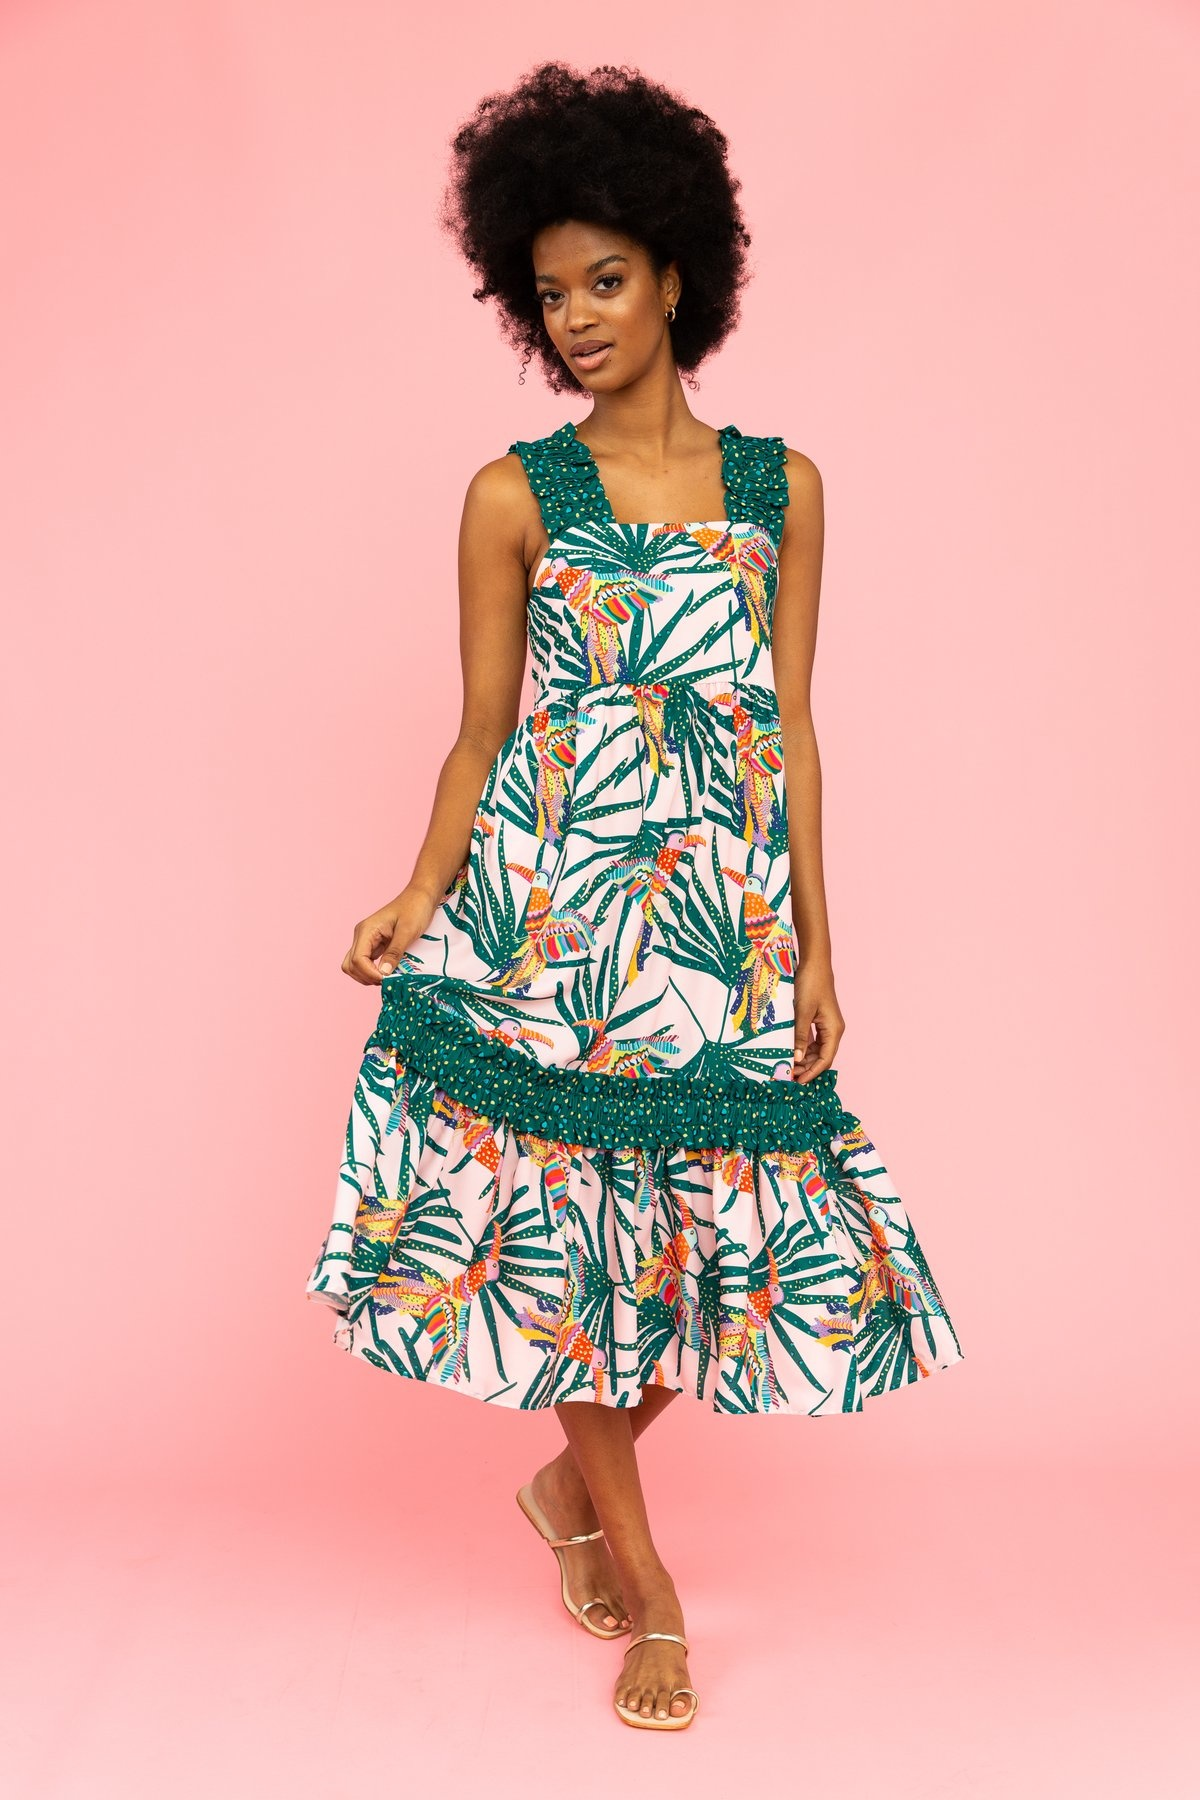 Crosby By Mollie Burch Bowie Dress in Parrot Party